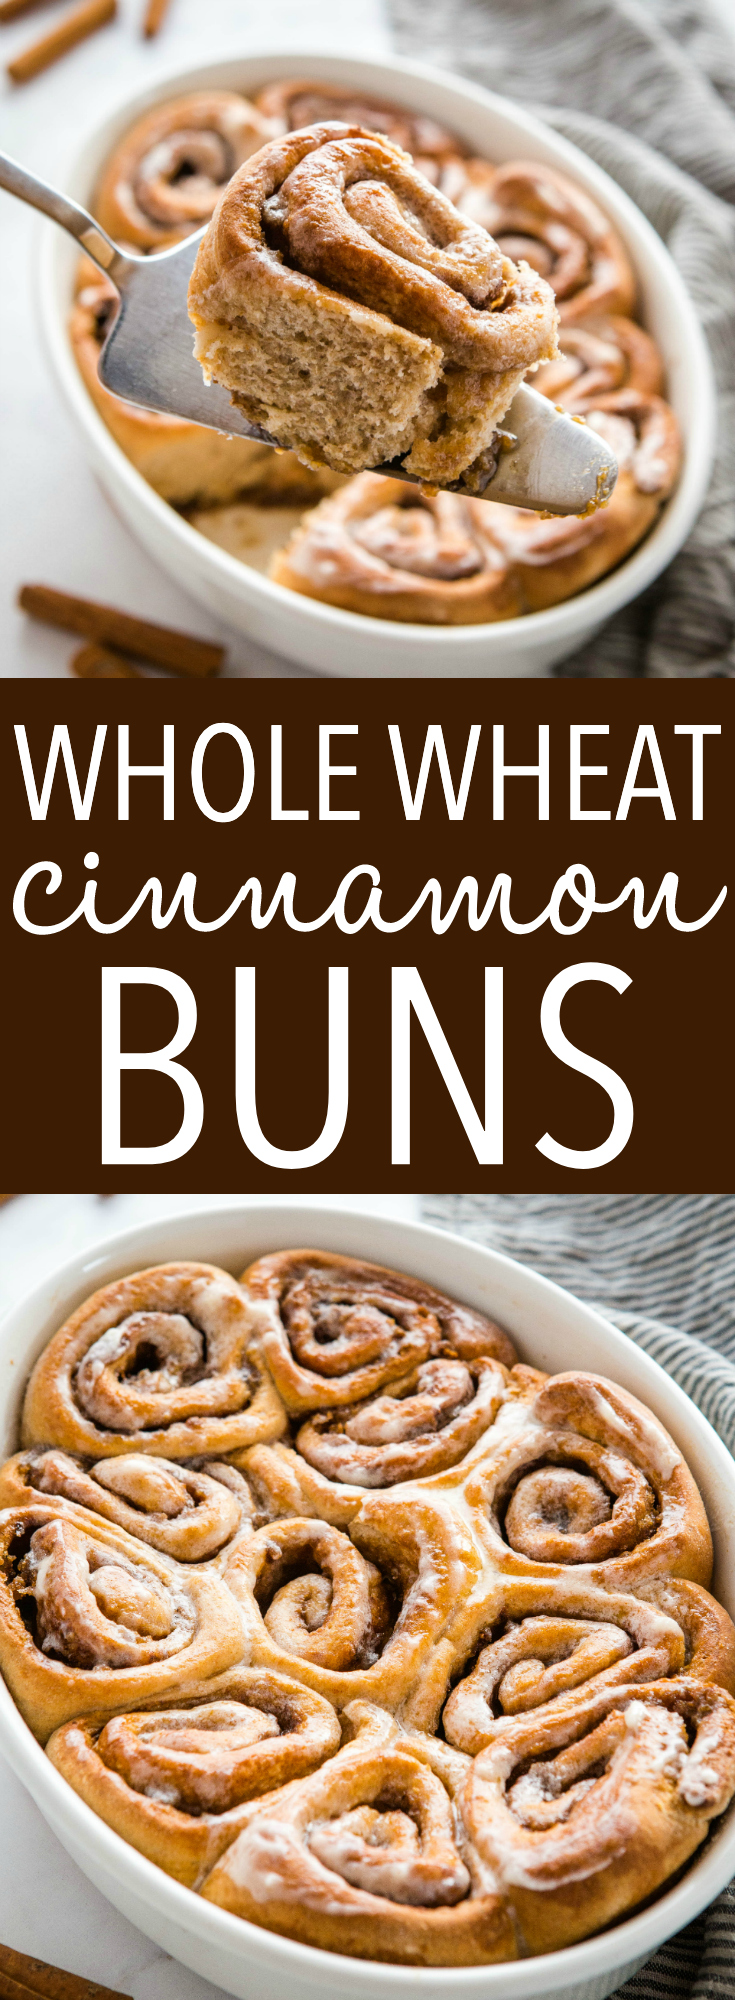 These Best Ever Whole Wheat Cinnamon Buns are sweet and sticky and made with whole wheat. Perfect cinnamon rolls from scratch with our pro tips! Recipe from thebusybaker.ca! #cinnamonrolls #cinnamonbuns #cinnamon #baking #breakfast #brunch #homemade #homesteading #holiday via @busybakerblog